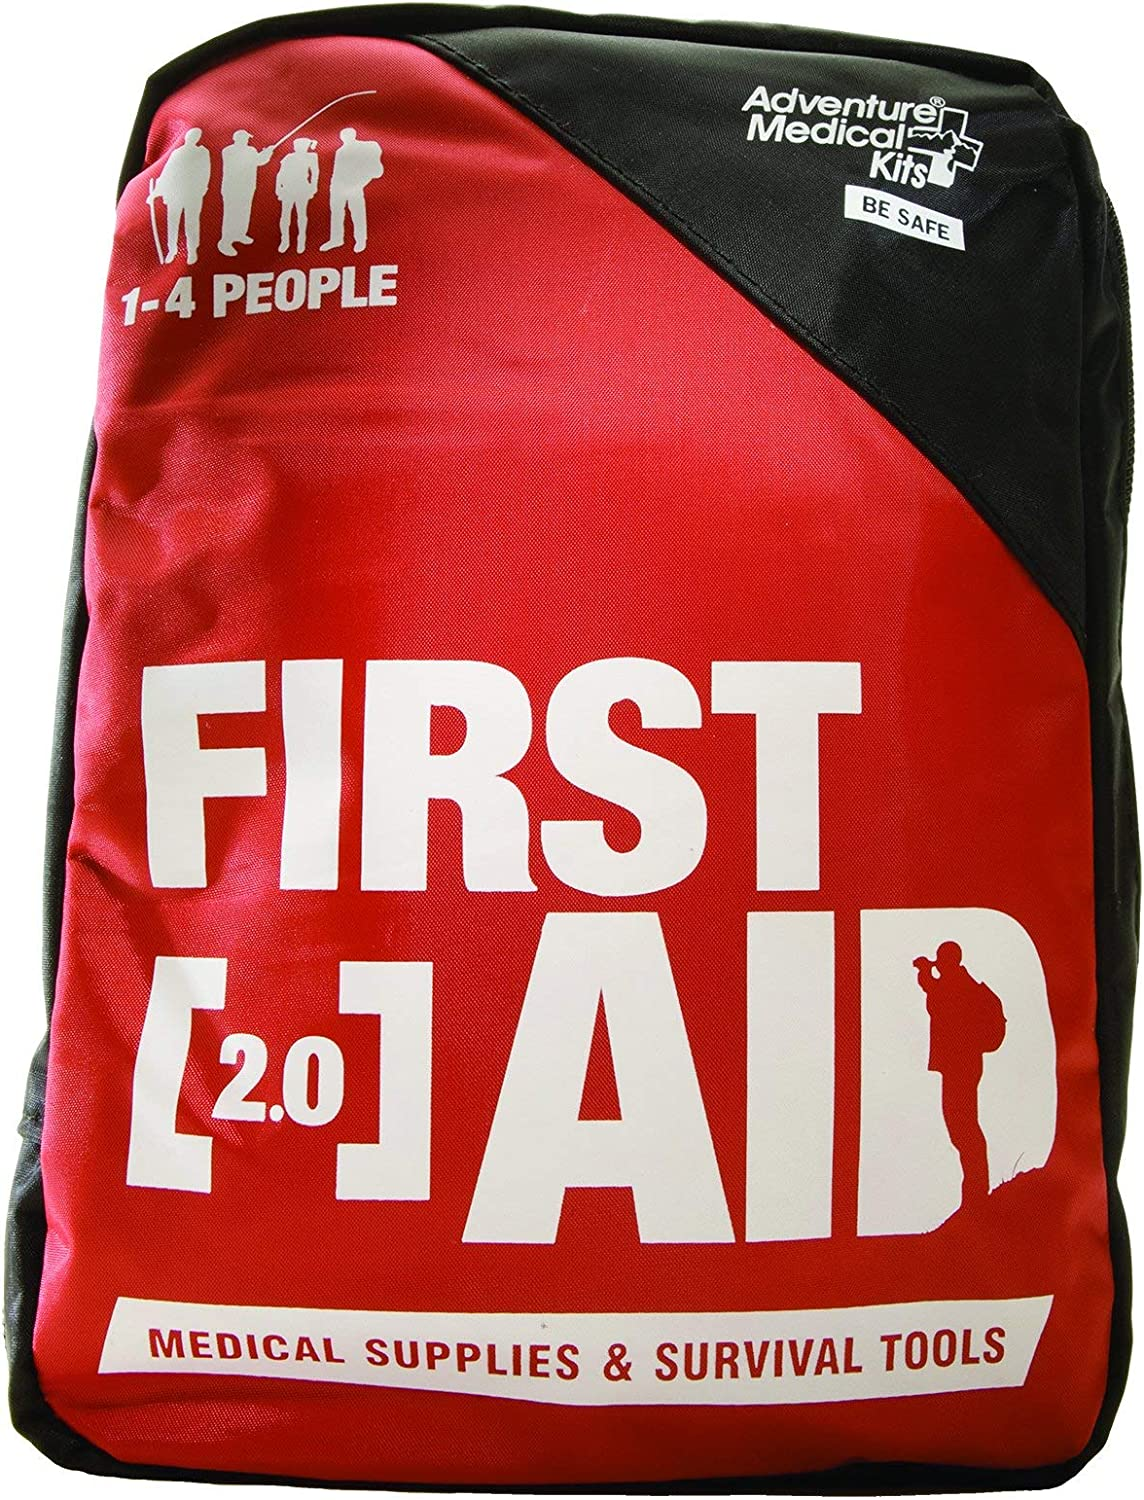 NEW Adventure Medical Kits AMK Adventure 2.0 First Aid Kit Camping Backpacking